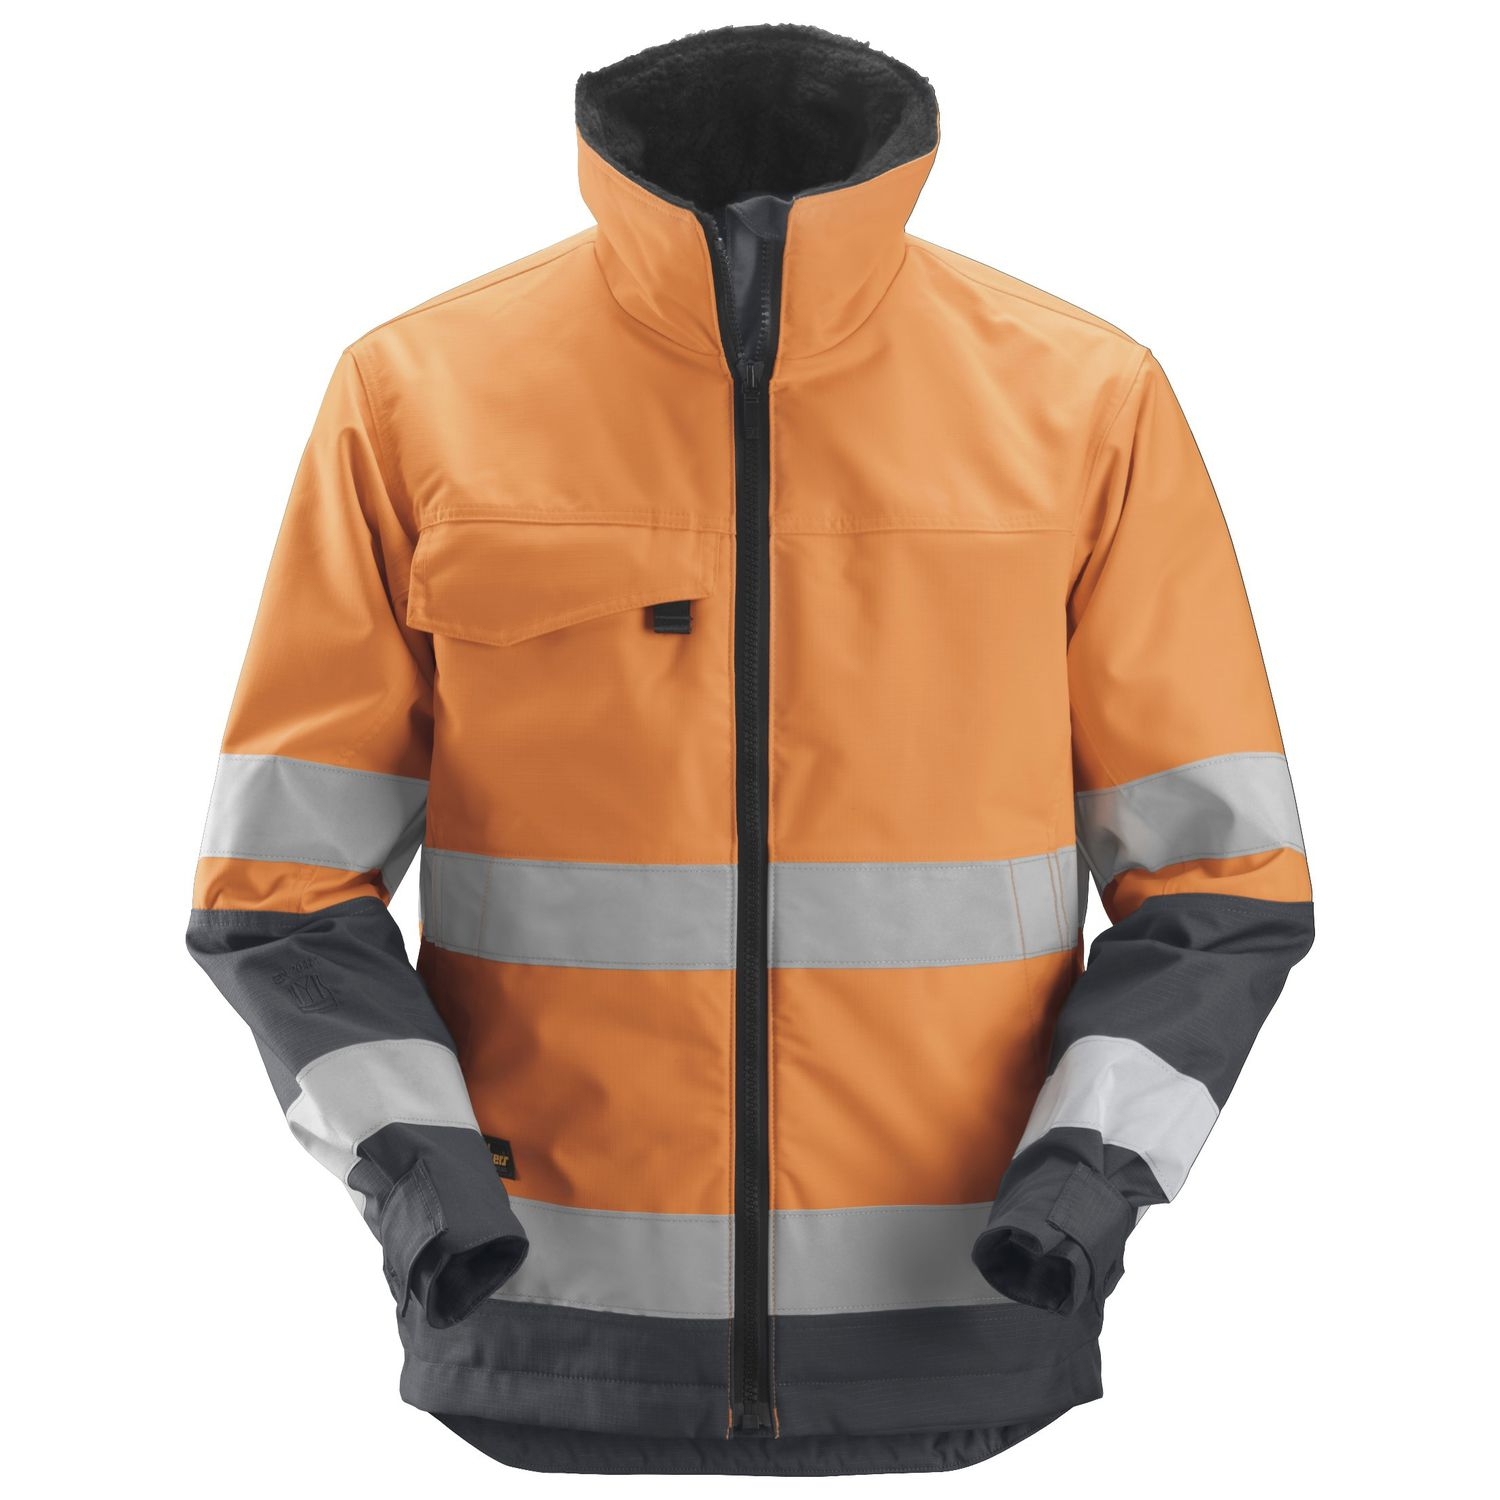 6429e9da68117 Work jacket / high-visibility / coated fabric / polyester - 1138 ...